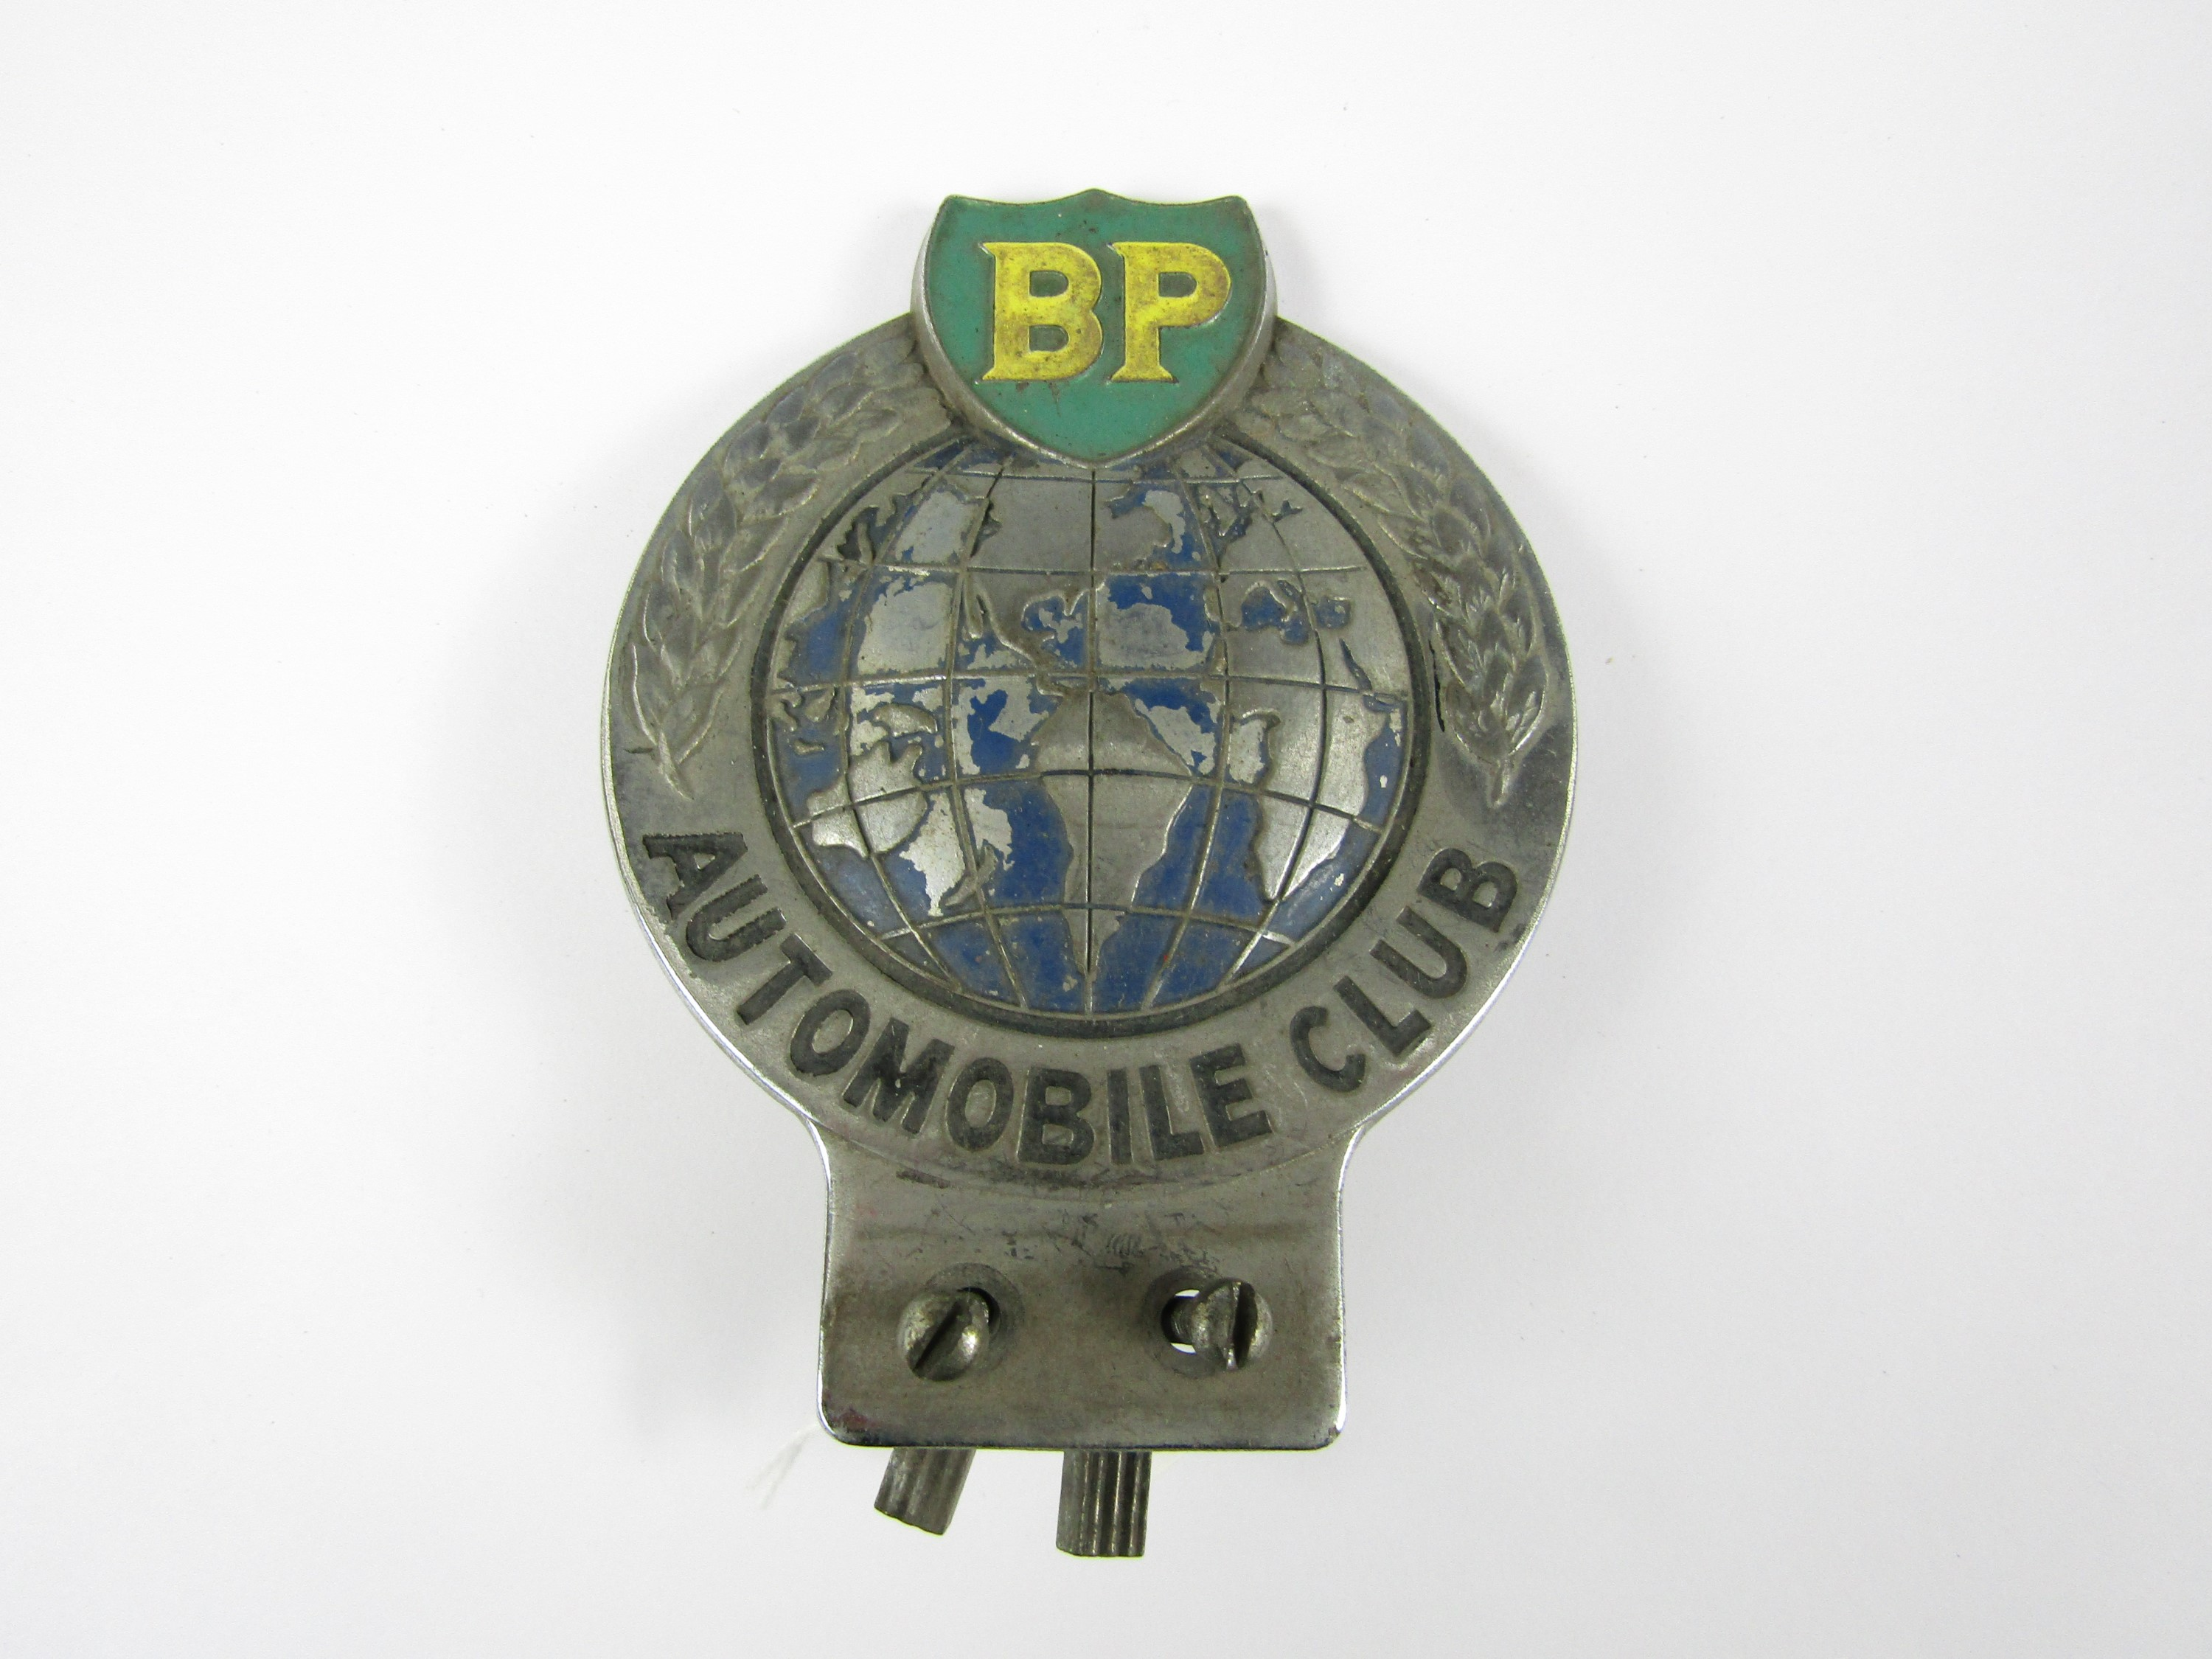 Lot 50 - A BP Automobile Club car badge